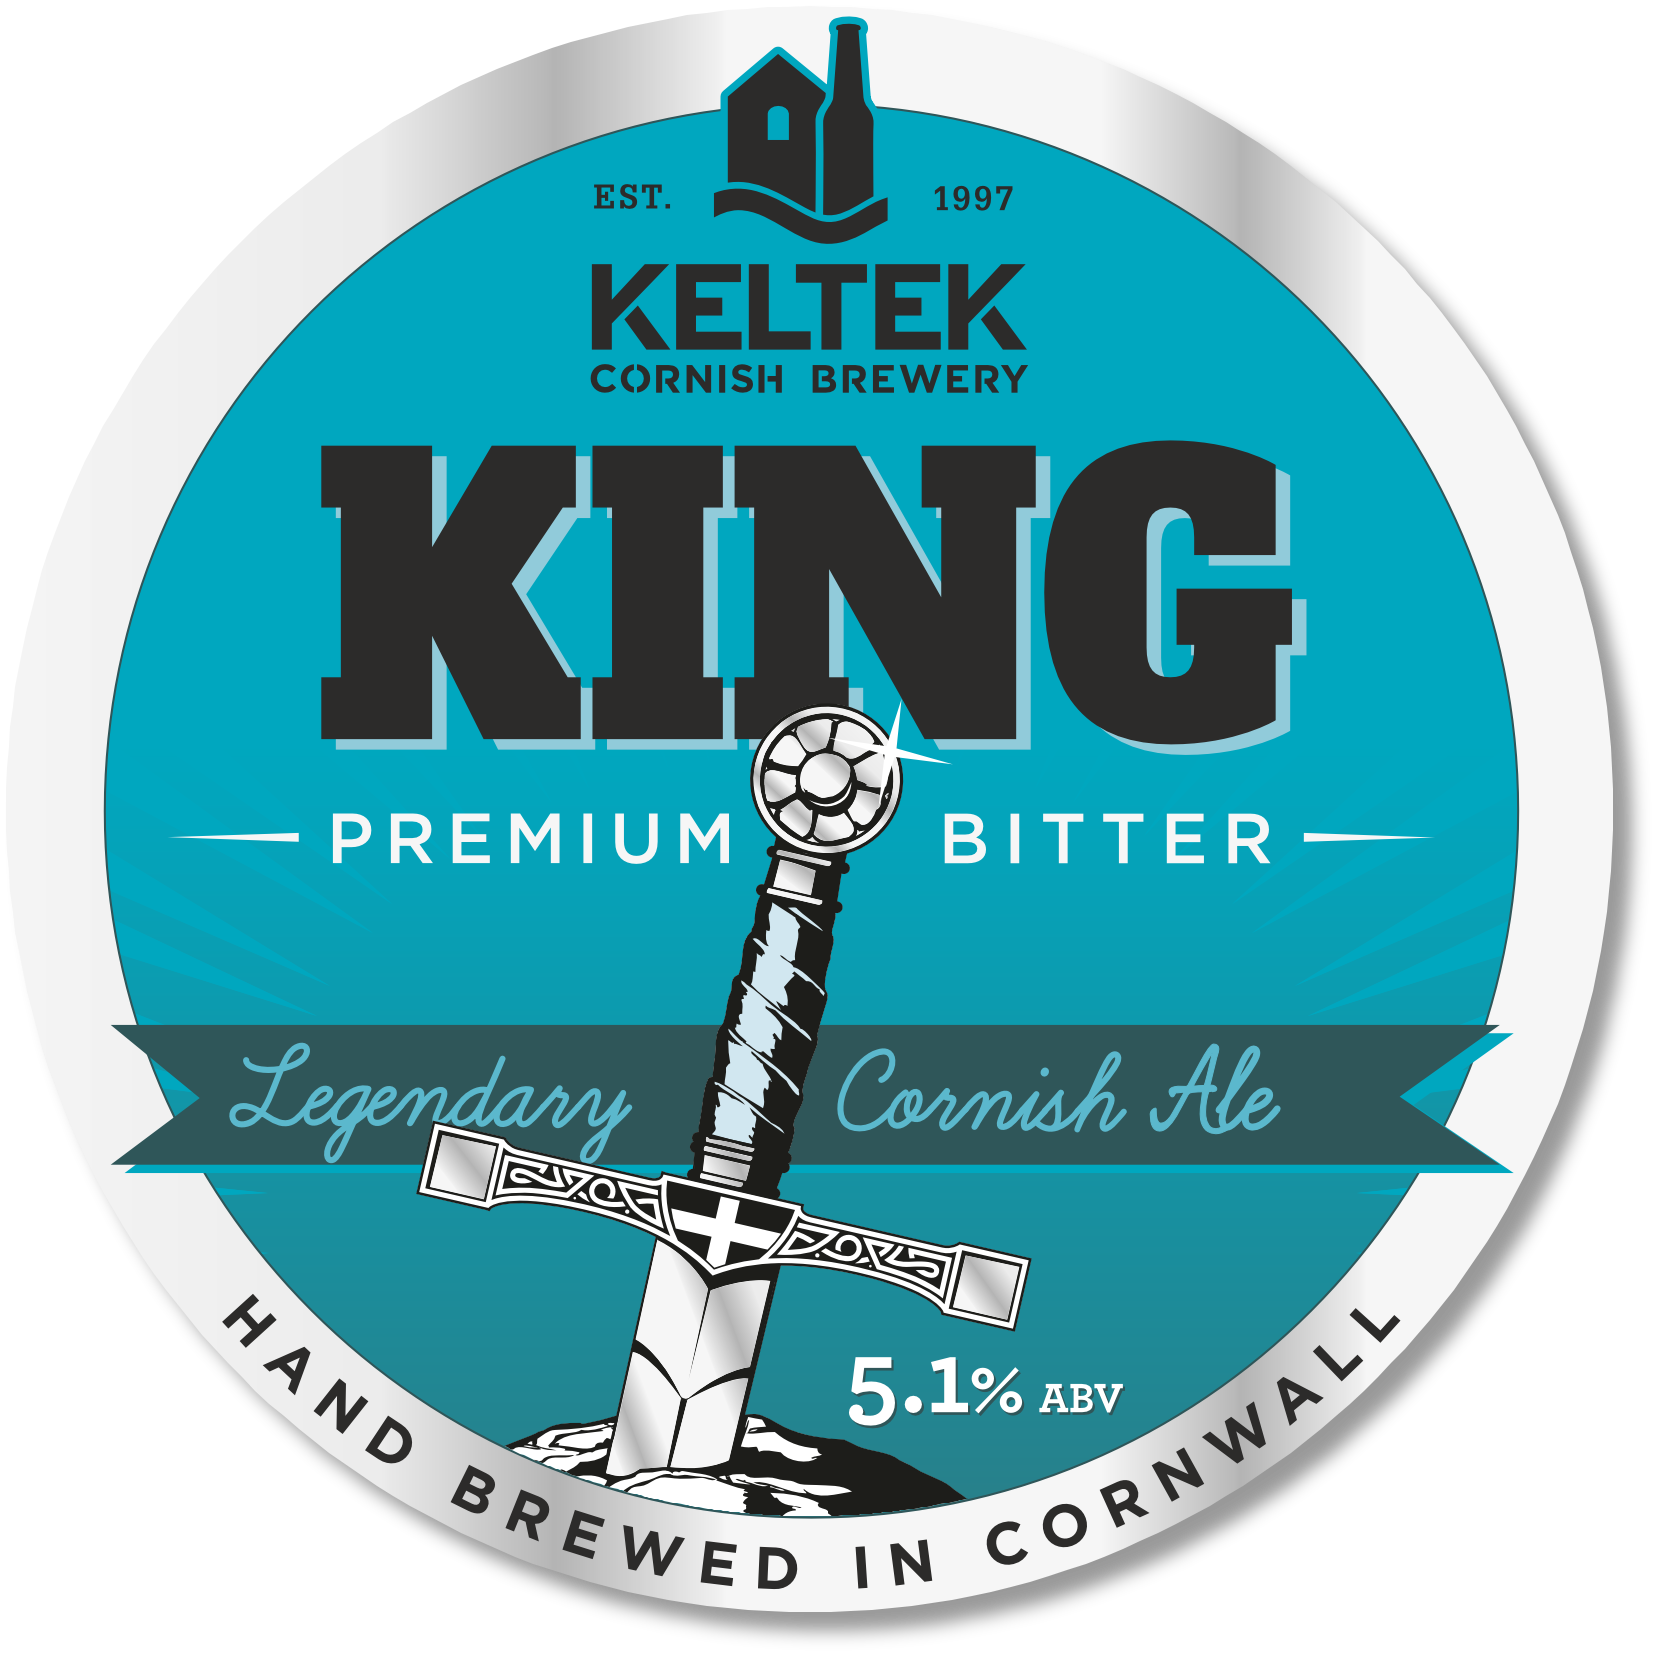 Keltek King 5.1% - A premium bitter, exceptionally well balanced and long-lasting on the palate. Winner of a host of awards, including Champion Bottled Beer at the SIBA UK National Brewing Awards and First Place Winner at the International World of Beer Awards, USA.